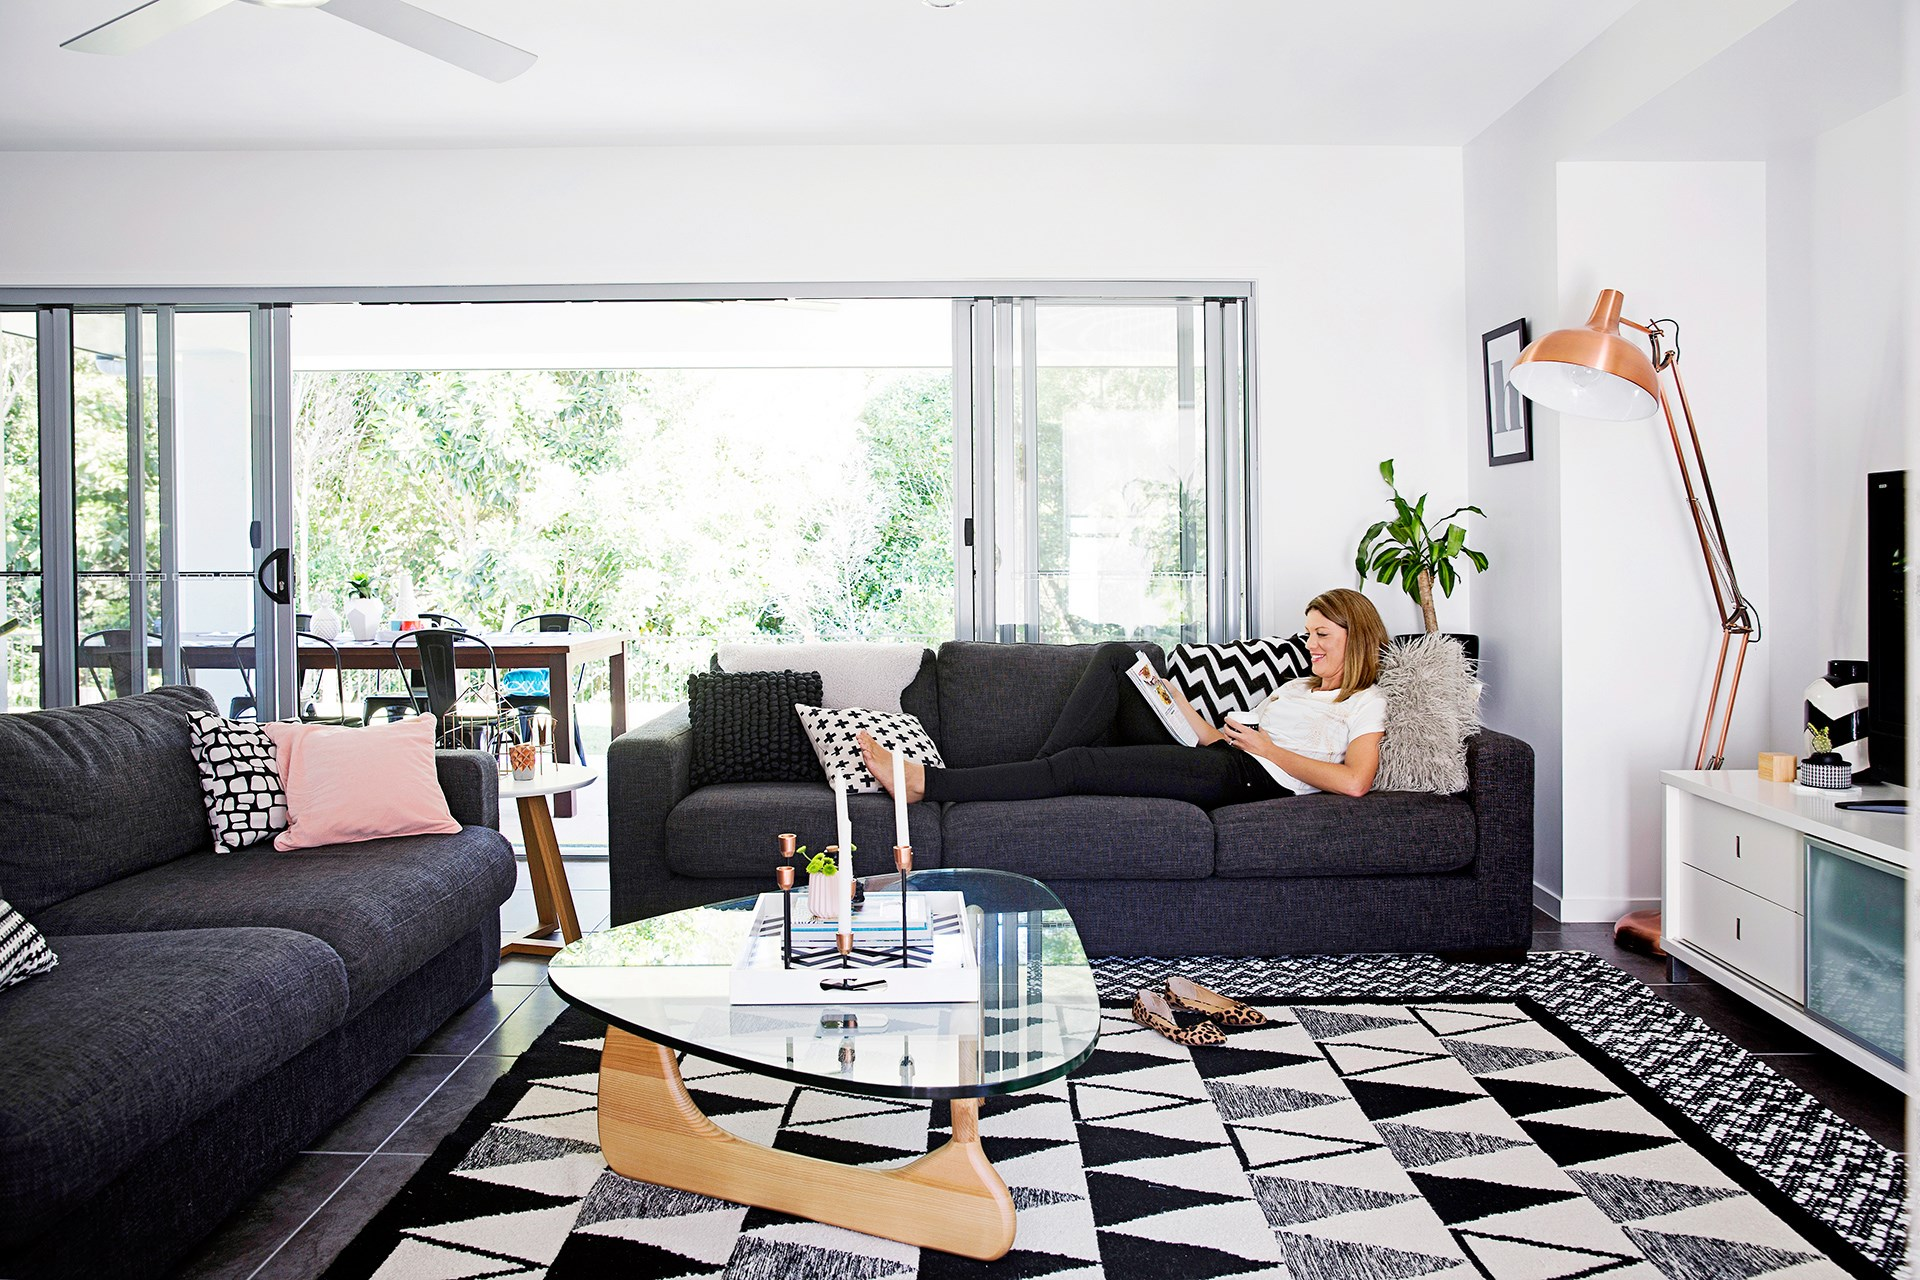 A bold black and white rug packs plenty of punch in the living room of this [graphic family home](http://www.homestolove.com.au/diy-family-builds-their-ideal-home-2801). Photo: James Henry / *homes+*